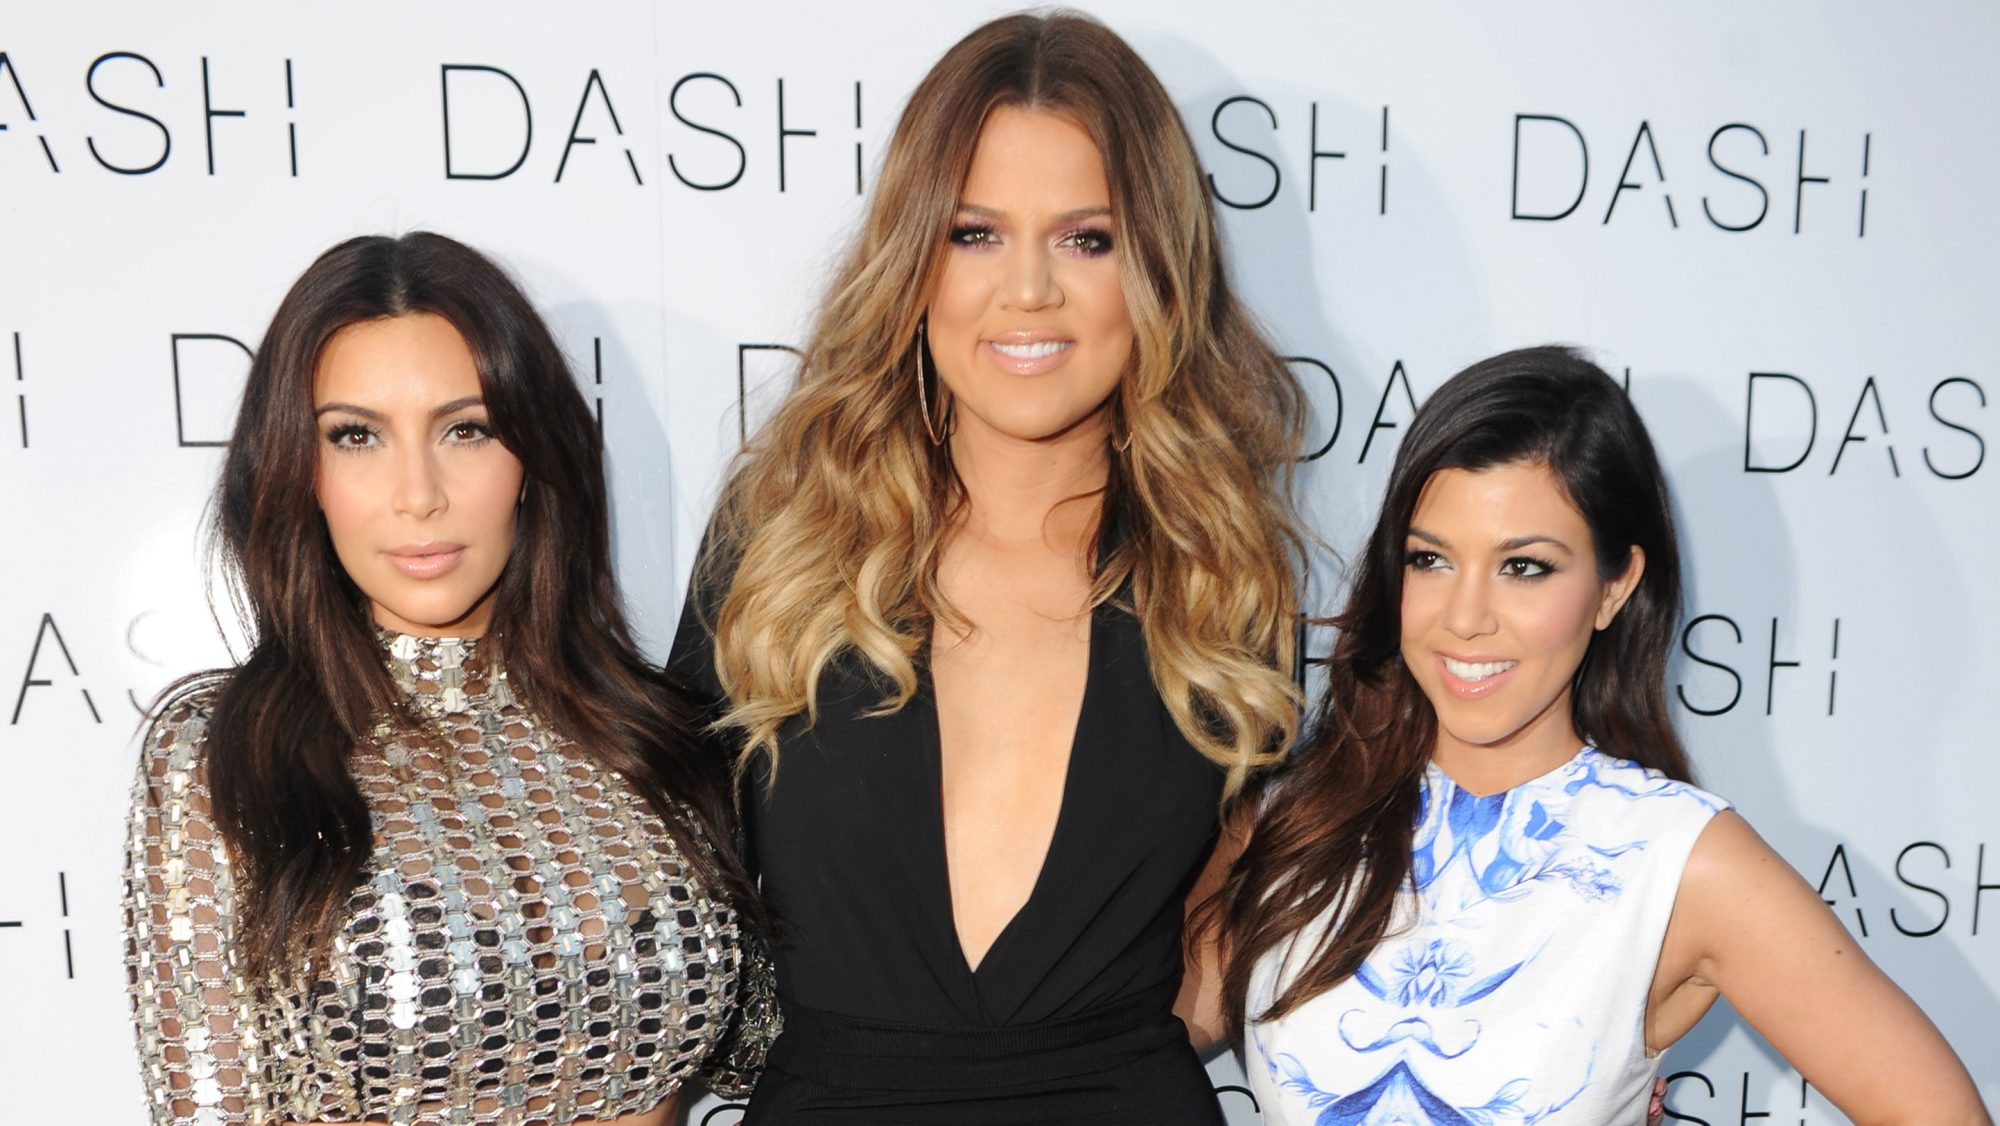 Khloé and Kourtney Kardashian Worry About Kim's Body Dysmorphia